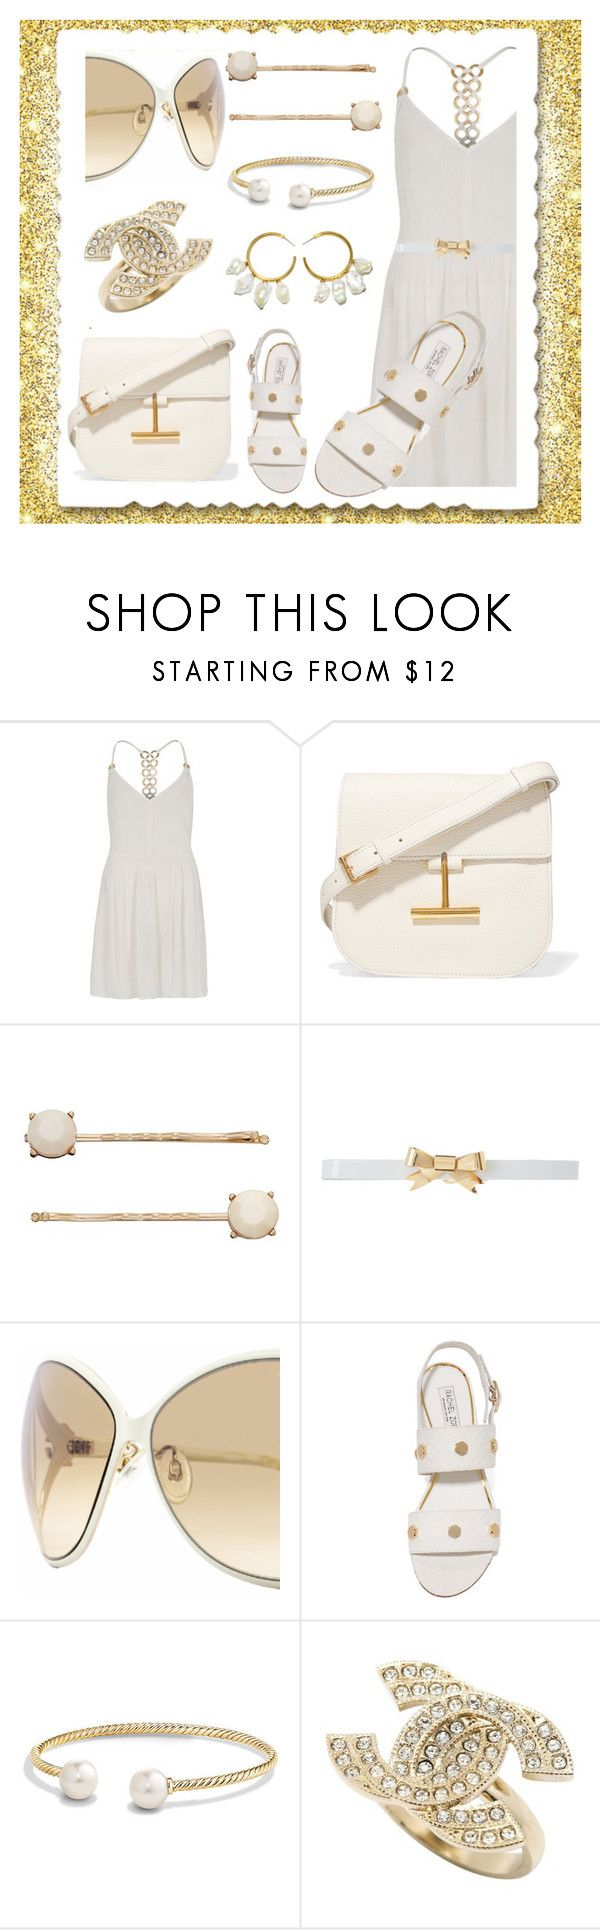 """""""Give it your Gold Stamp!"""" by kelli-bailey-ouimet ❤ liked on Polyvore featuring River Island, Tom Ford, LC Lauren Conrad, Rodarte, Roberto Cavalli, Rachel Zoe, David Yurman, Chanel and Lizzie Fortunato"""